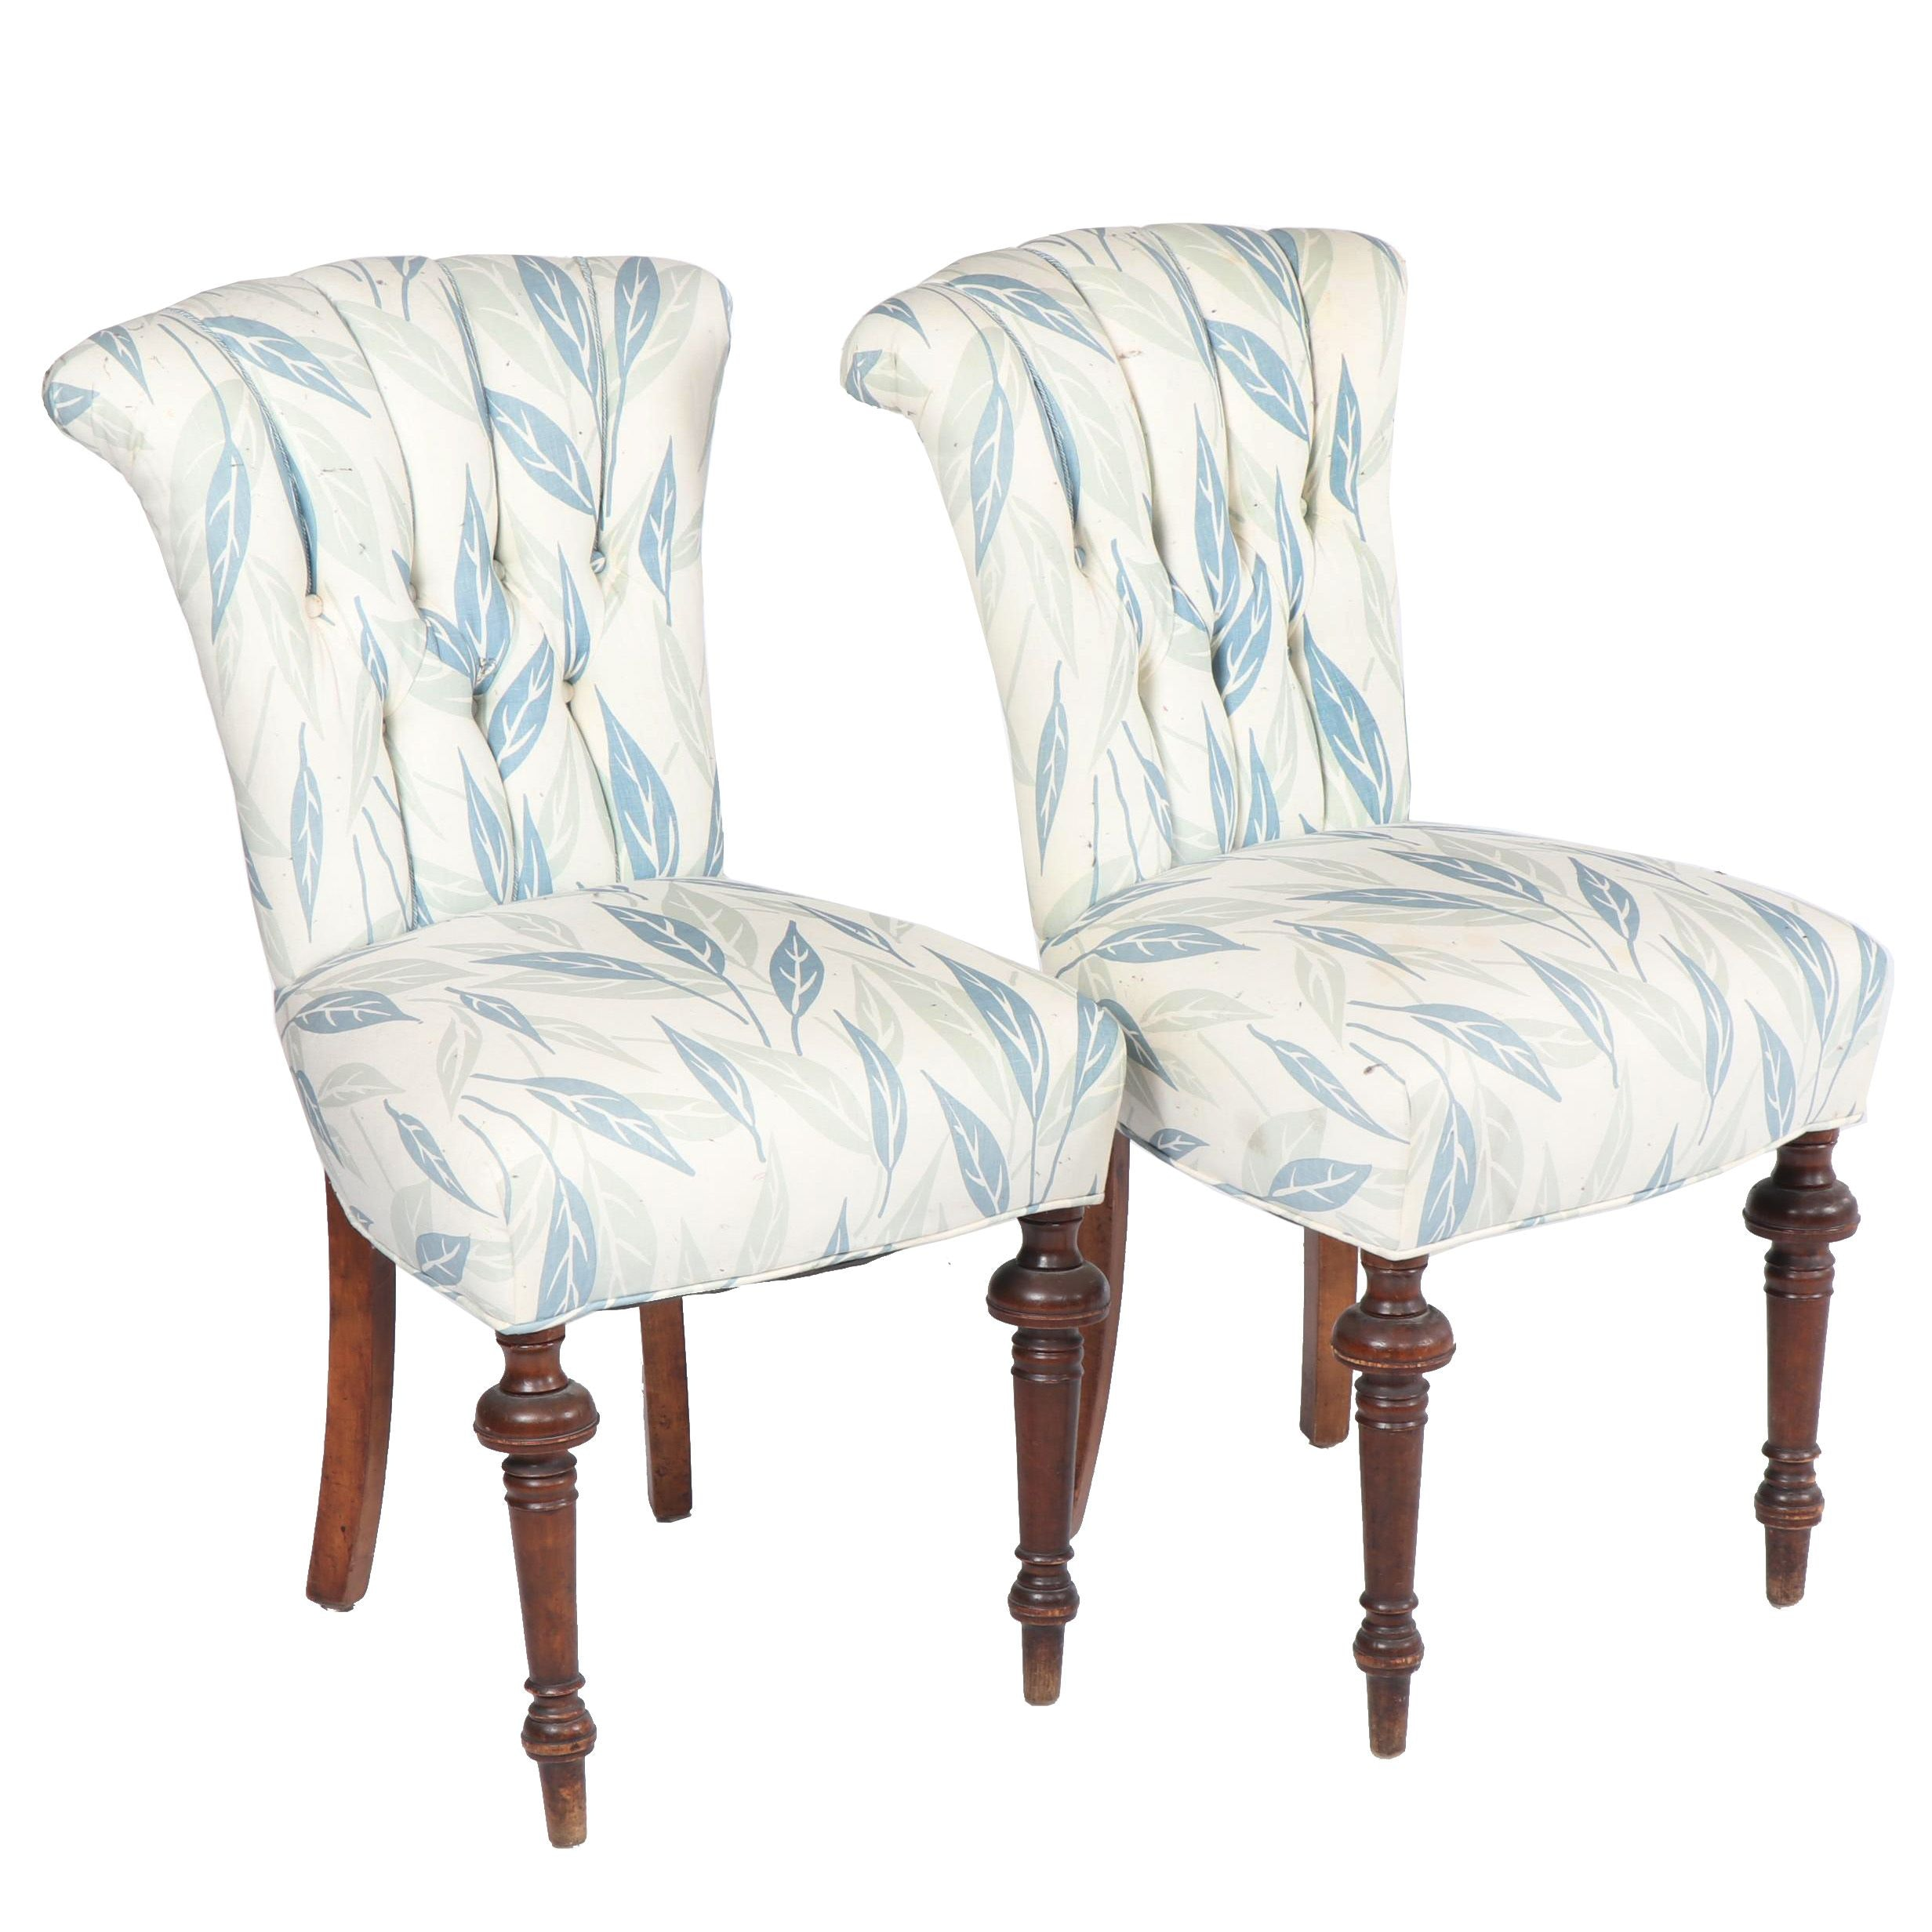 Federal Style Button-Tufted Upholstered Side Chairs, 21st Century